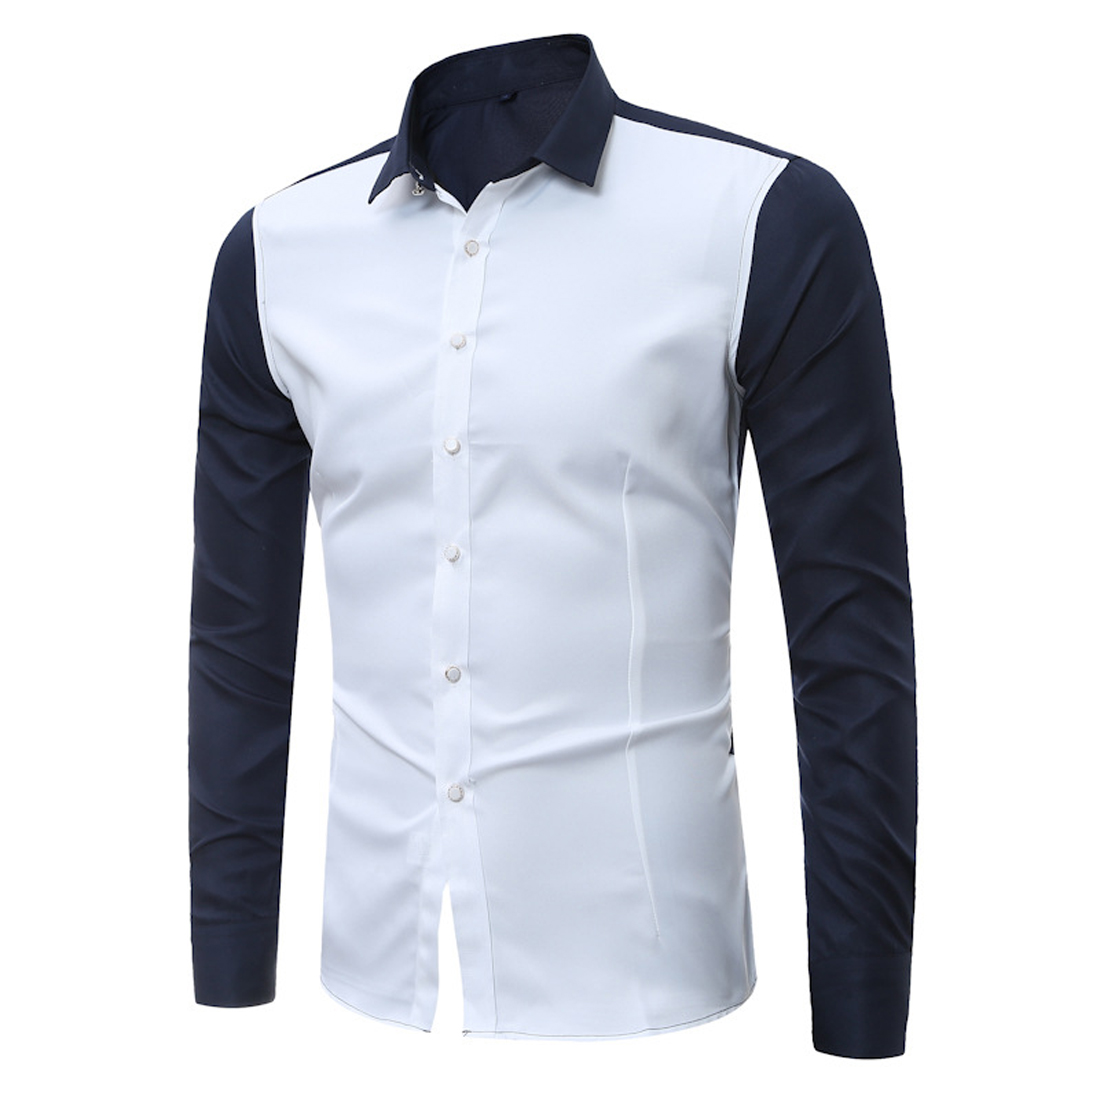 Compare Prices on Formal Shirts Men- Online Shopping/Buy Low Price ...